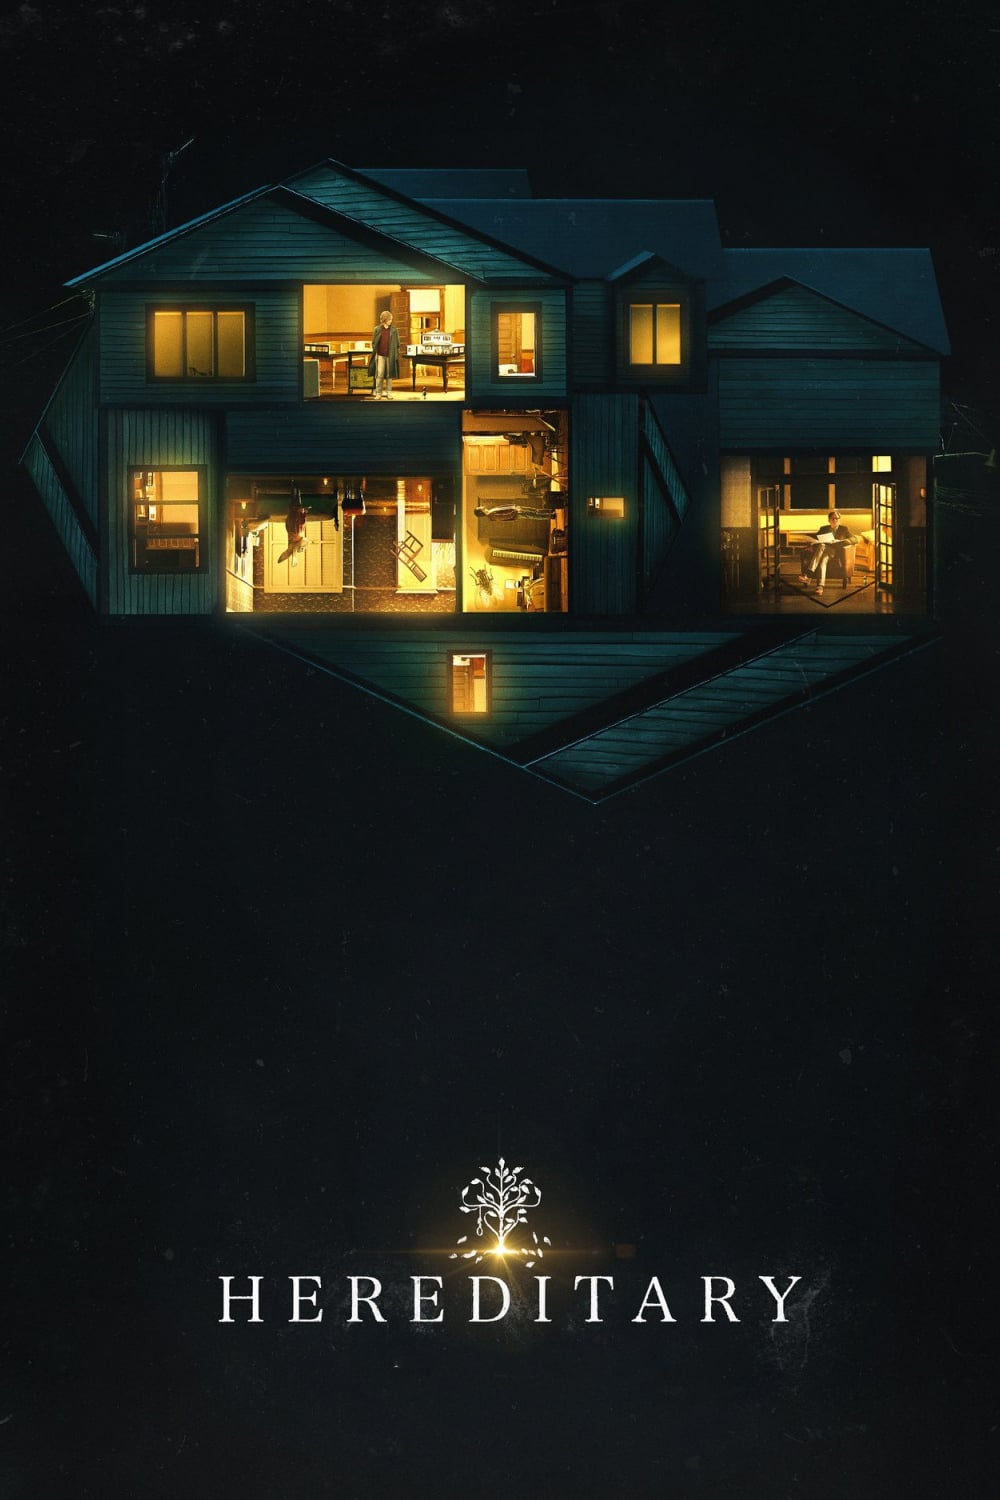 image for Hereditary